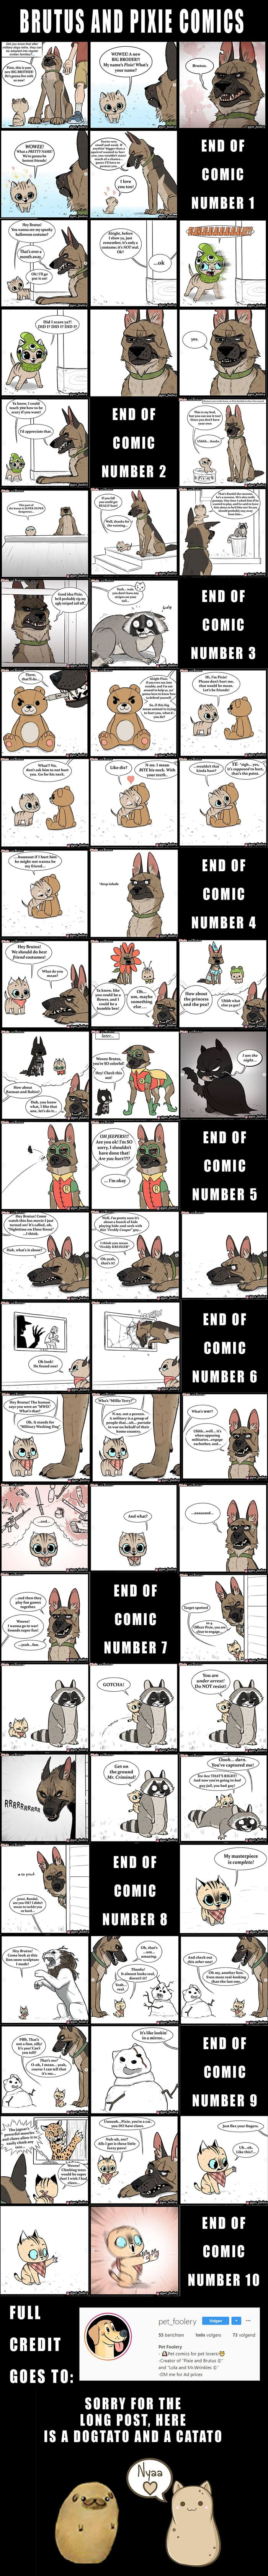 Brutus and Pixie all comics (all credit score to Pet_Foolery in Instagram). Since many 9gaggers do not appear to have Instagram I believed it could be a good suggestion to show all these comics into one image.